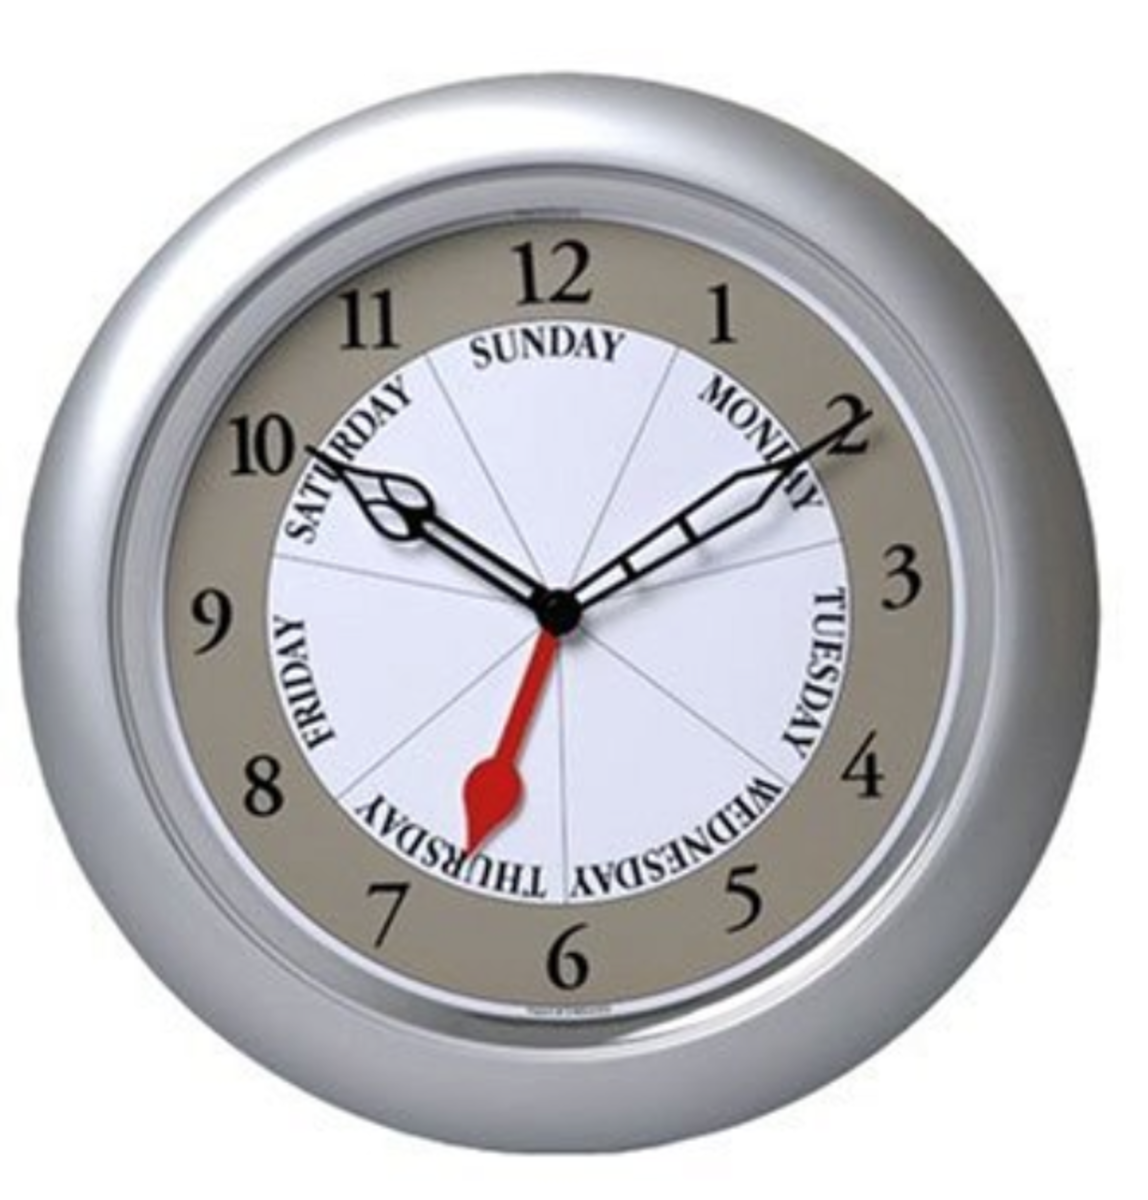 Click the link in the text to the left to see some incredible day clocks - including a few that are great for Alzheimer and dementia patients.